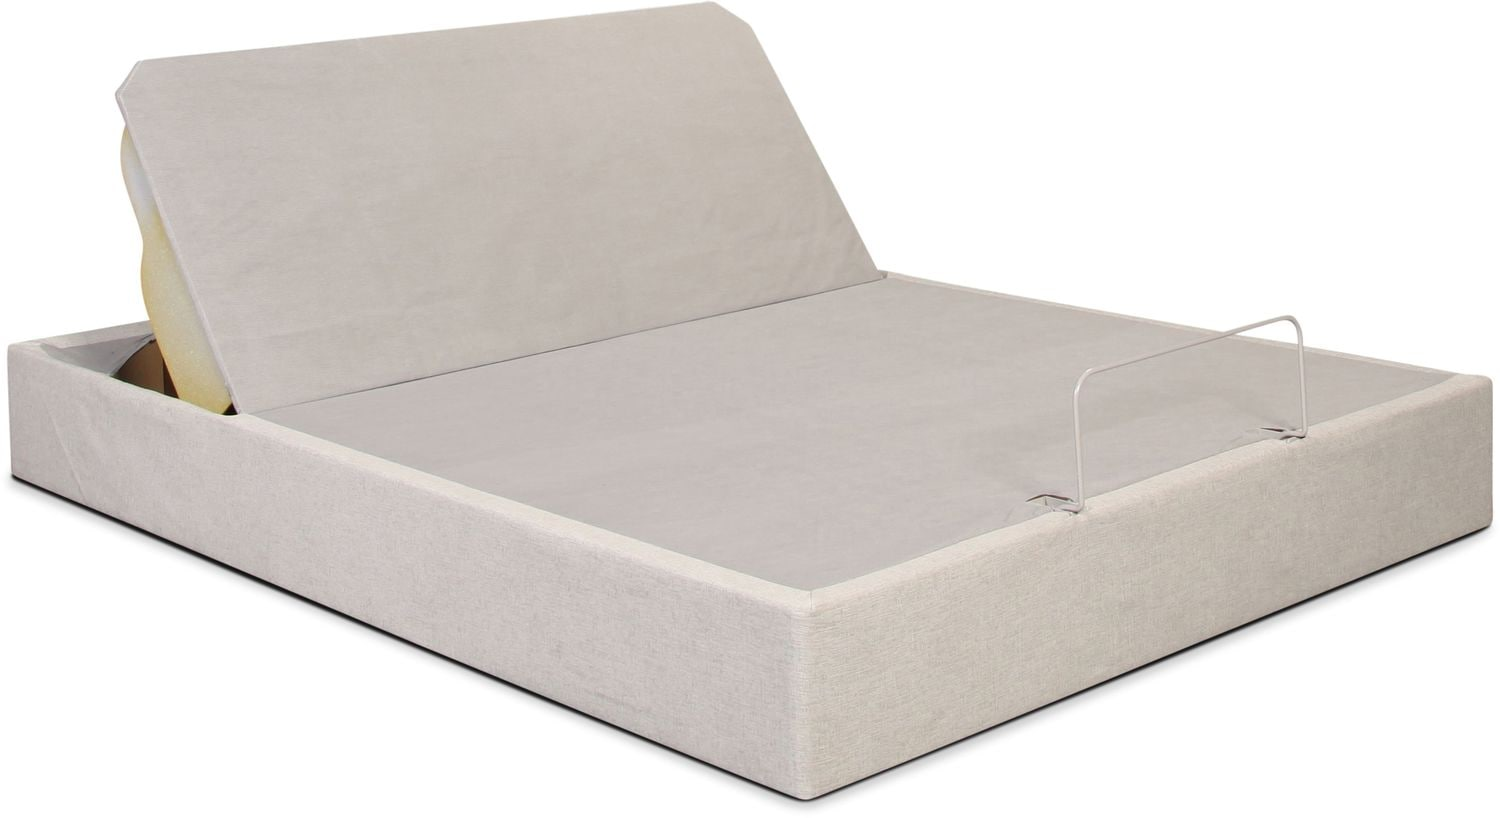 Adjustable Bed Base Full : Tempur pedic up full adjustable base levin furniture